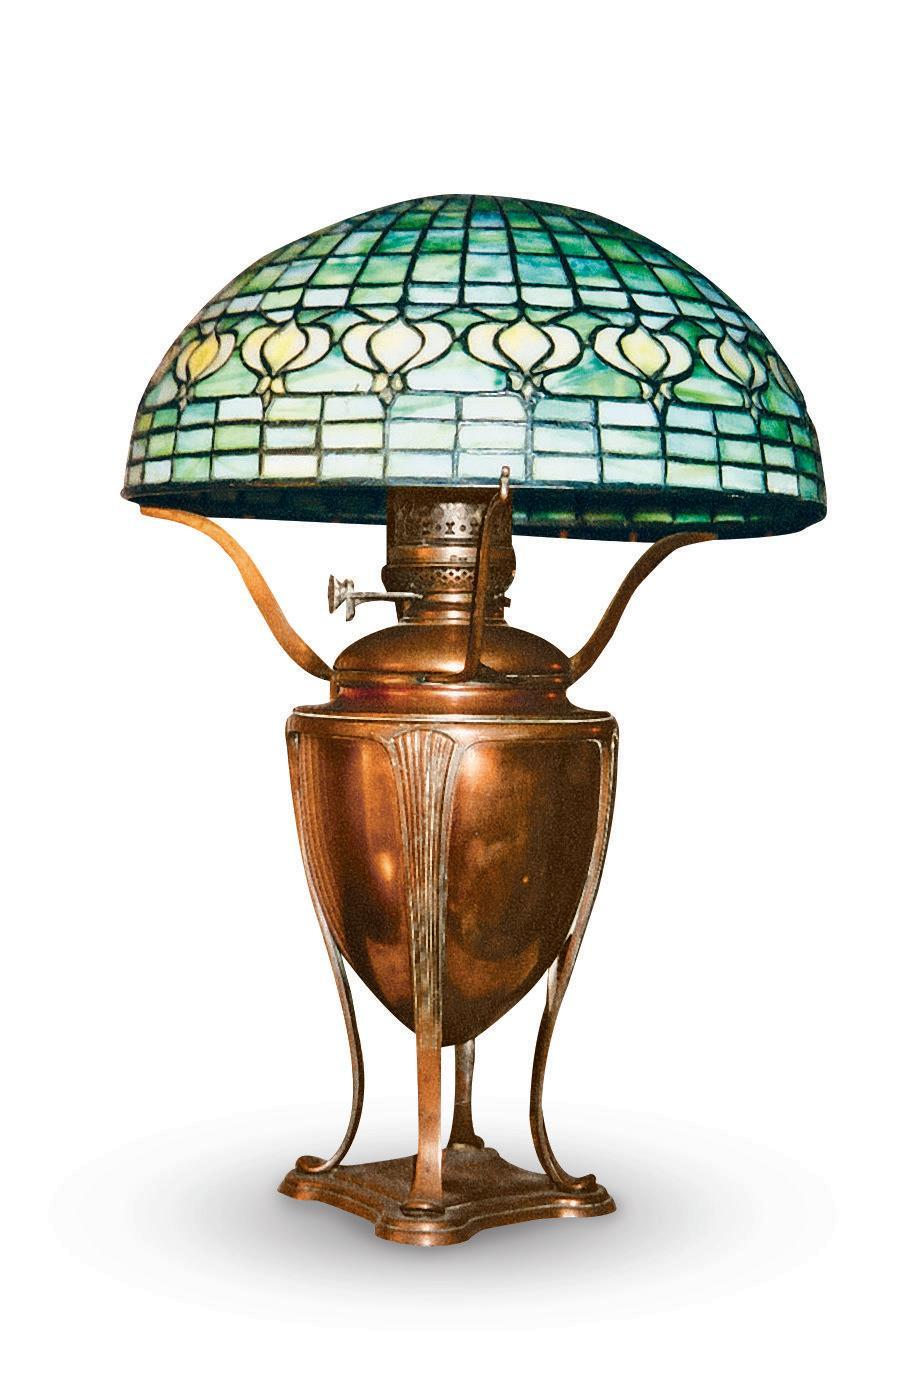 """<p><strong>What it was worth (2004):</strong> $12,000</p><p><strong>What it's worth now:</strong> $12,000</p><p>Compared to current <a href=""""https://www.tiffanylamps.com/tiffany-table-lamps.html"""" rel=""""nofollow noopener"""" target=""""_blank"""" data-ylk=""""slk:Tiffany Table designs"""" class=""""link rapid-noclick-resp"""">Tiffany Table designs</a> — which are sold for a few hundred dollars — some versions are quite a bit pricier.</p>"""